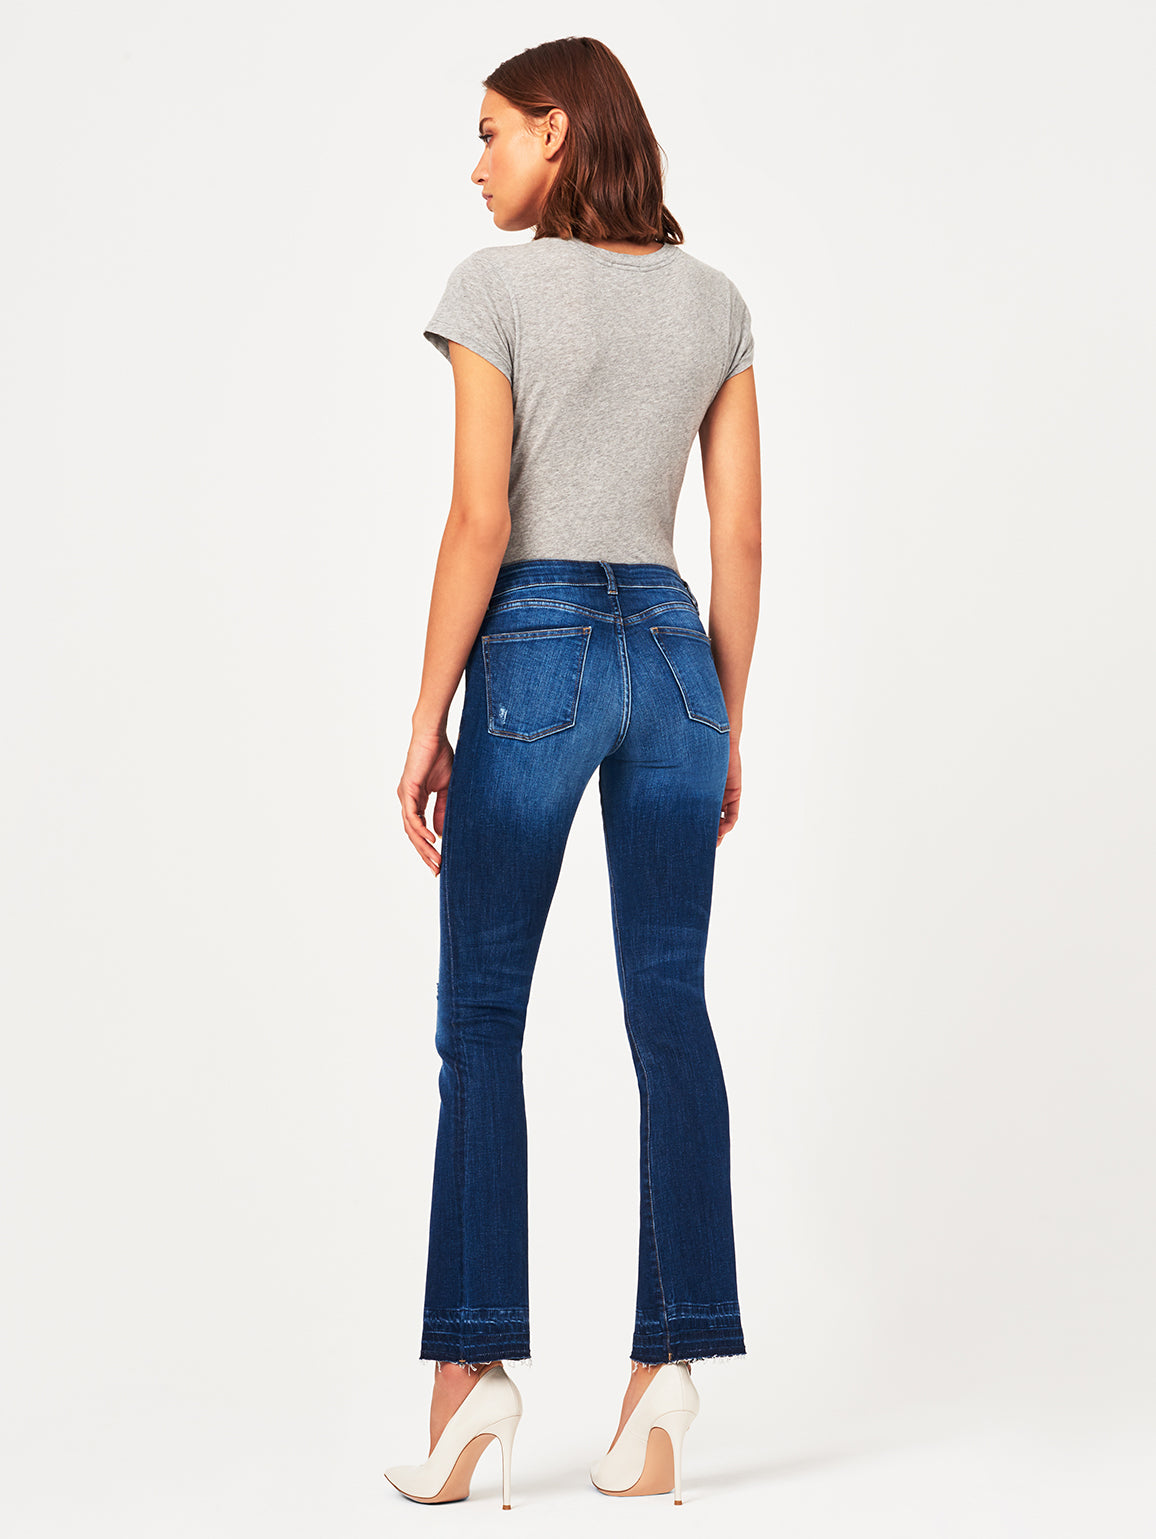 Bridget Mid Rise Bootcut 33"